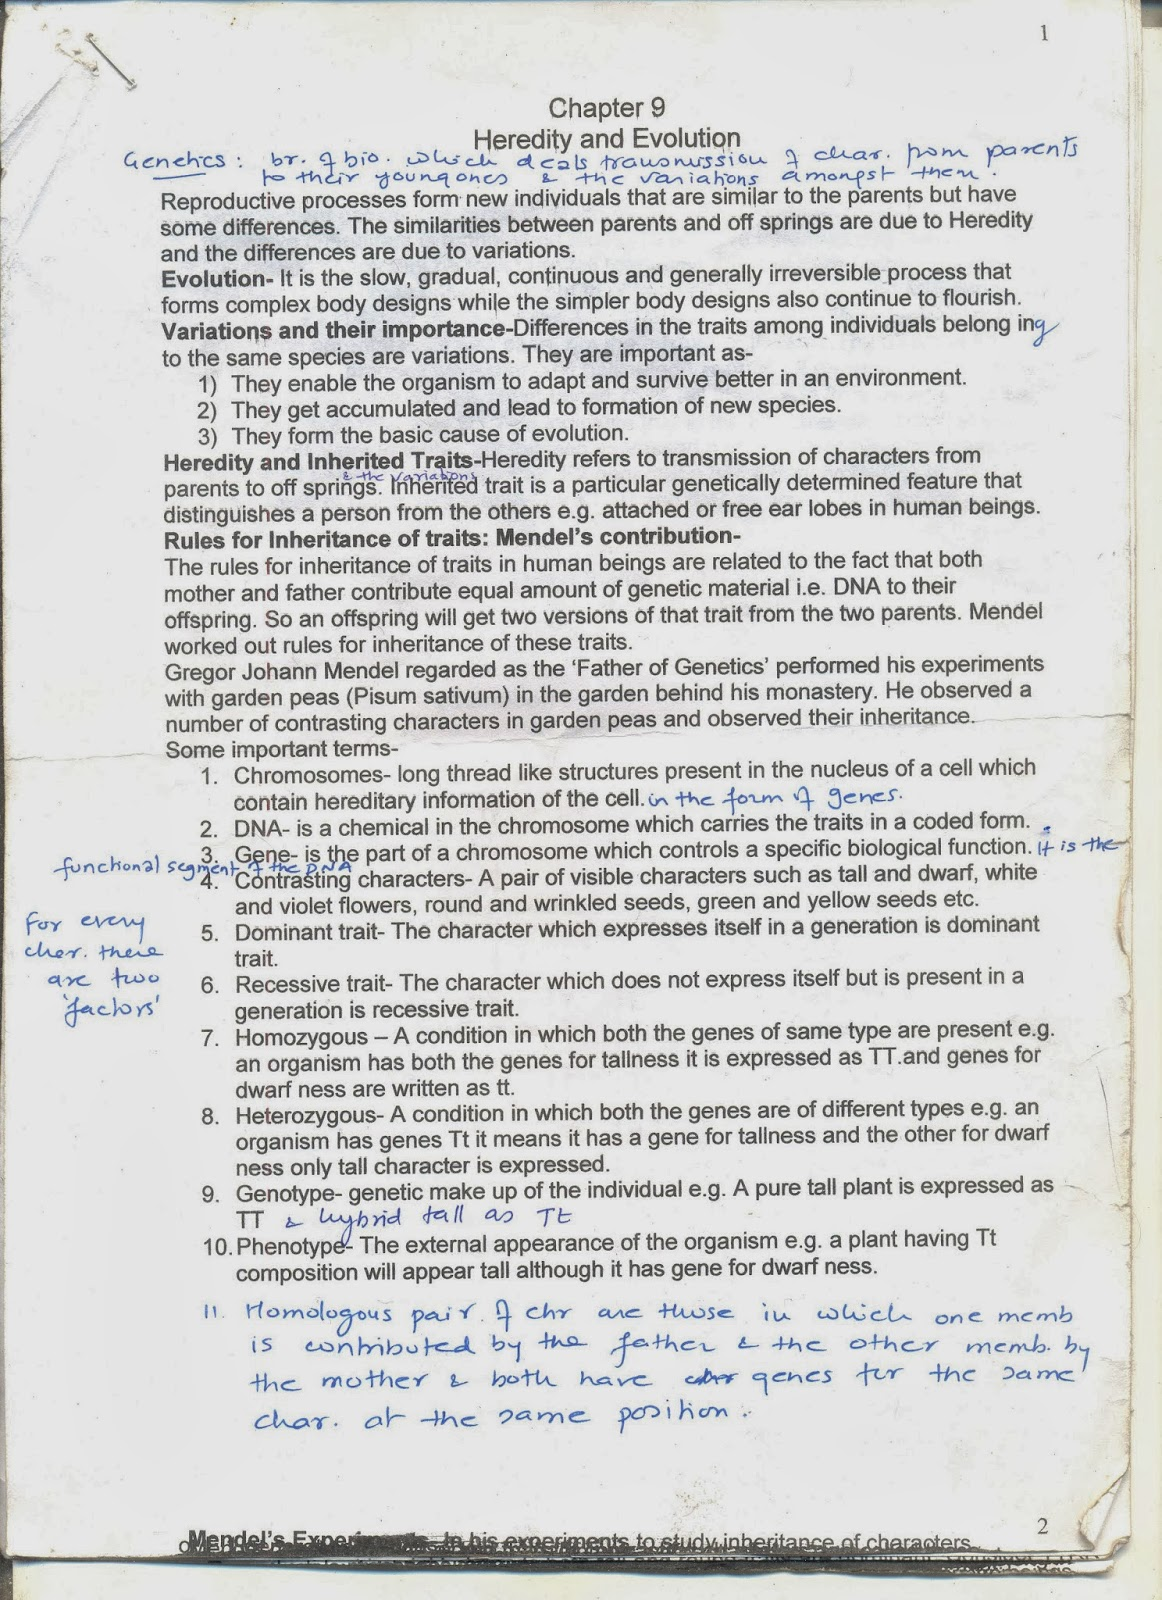 biology assignment View notes - assignment 1- biology article from sci 115 at strayer biology article assignment 1 1 biology article dianne lovett strayer university introduction to biology, sci 115 may 15, 2013 the.